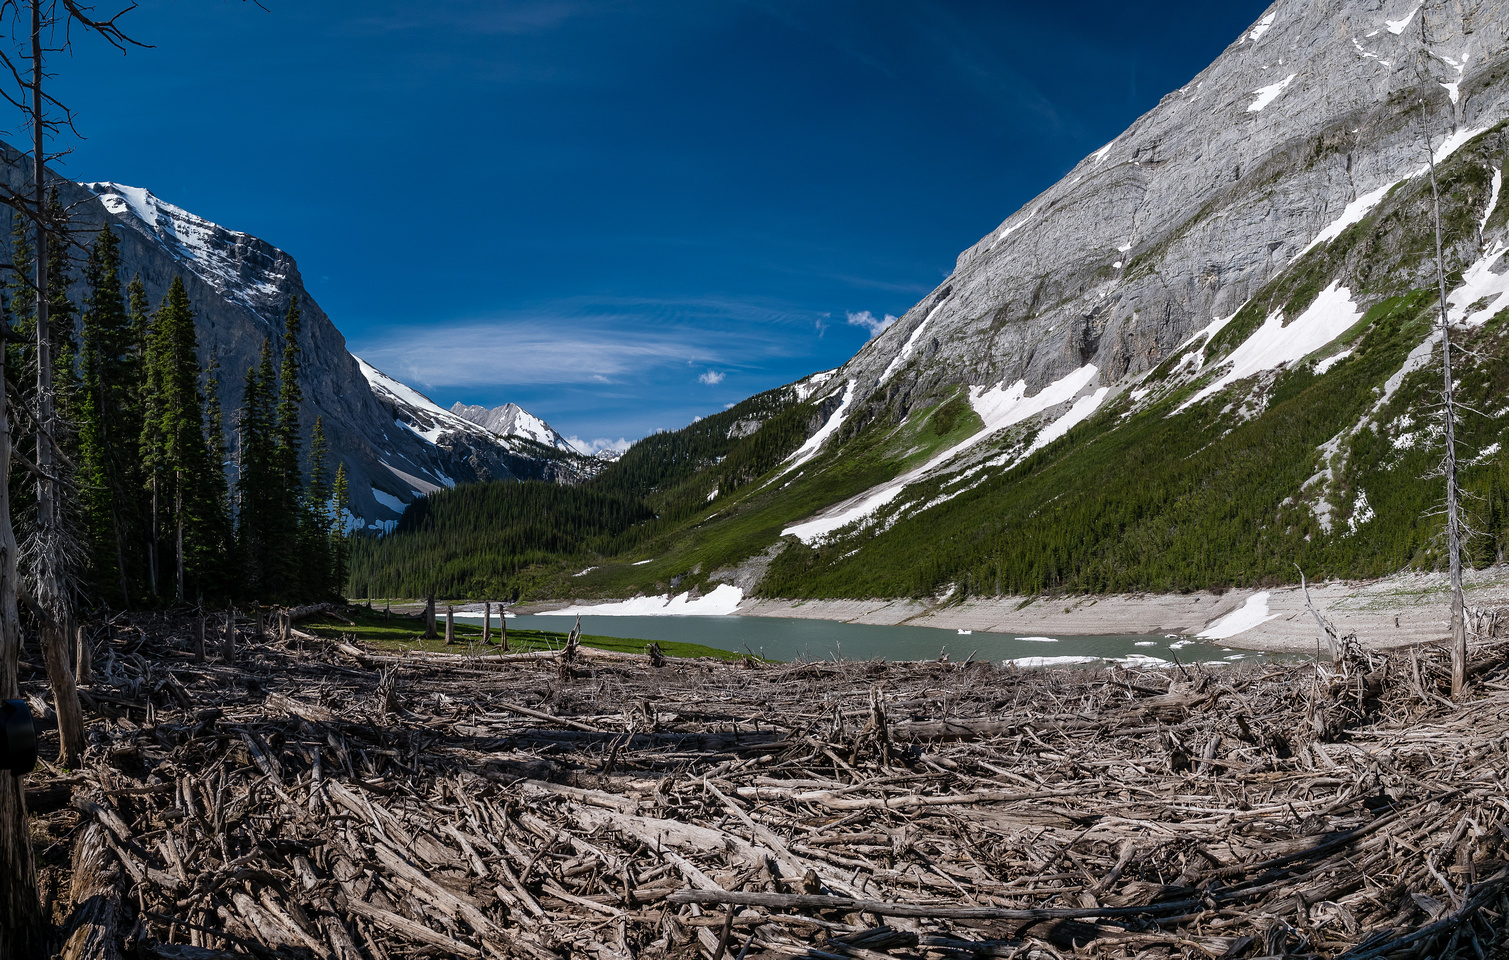 Gorgeous Hidden Lake. And it's low water - a bonus.